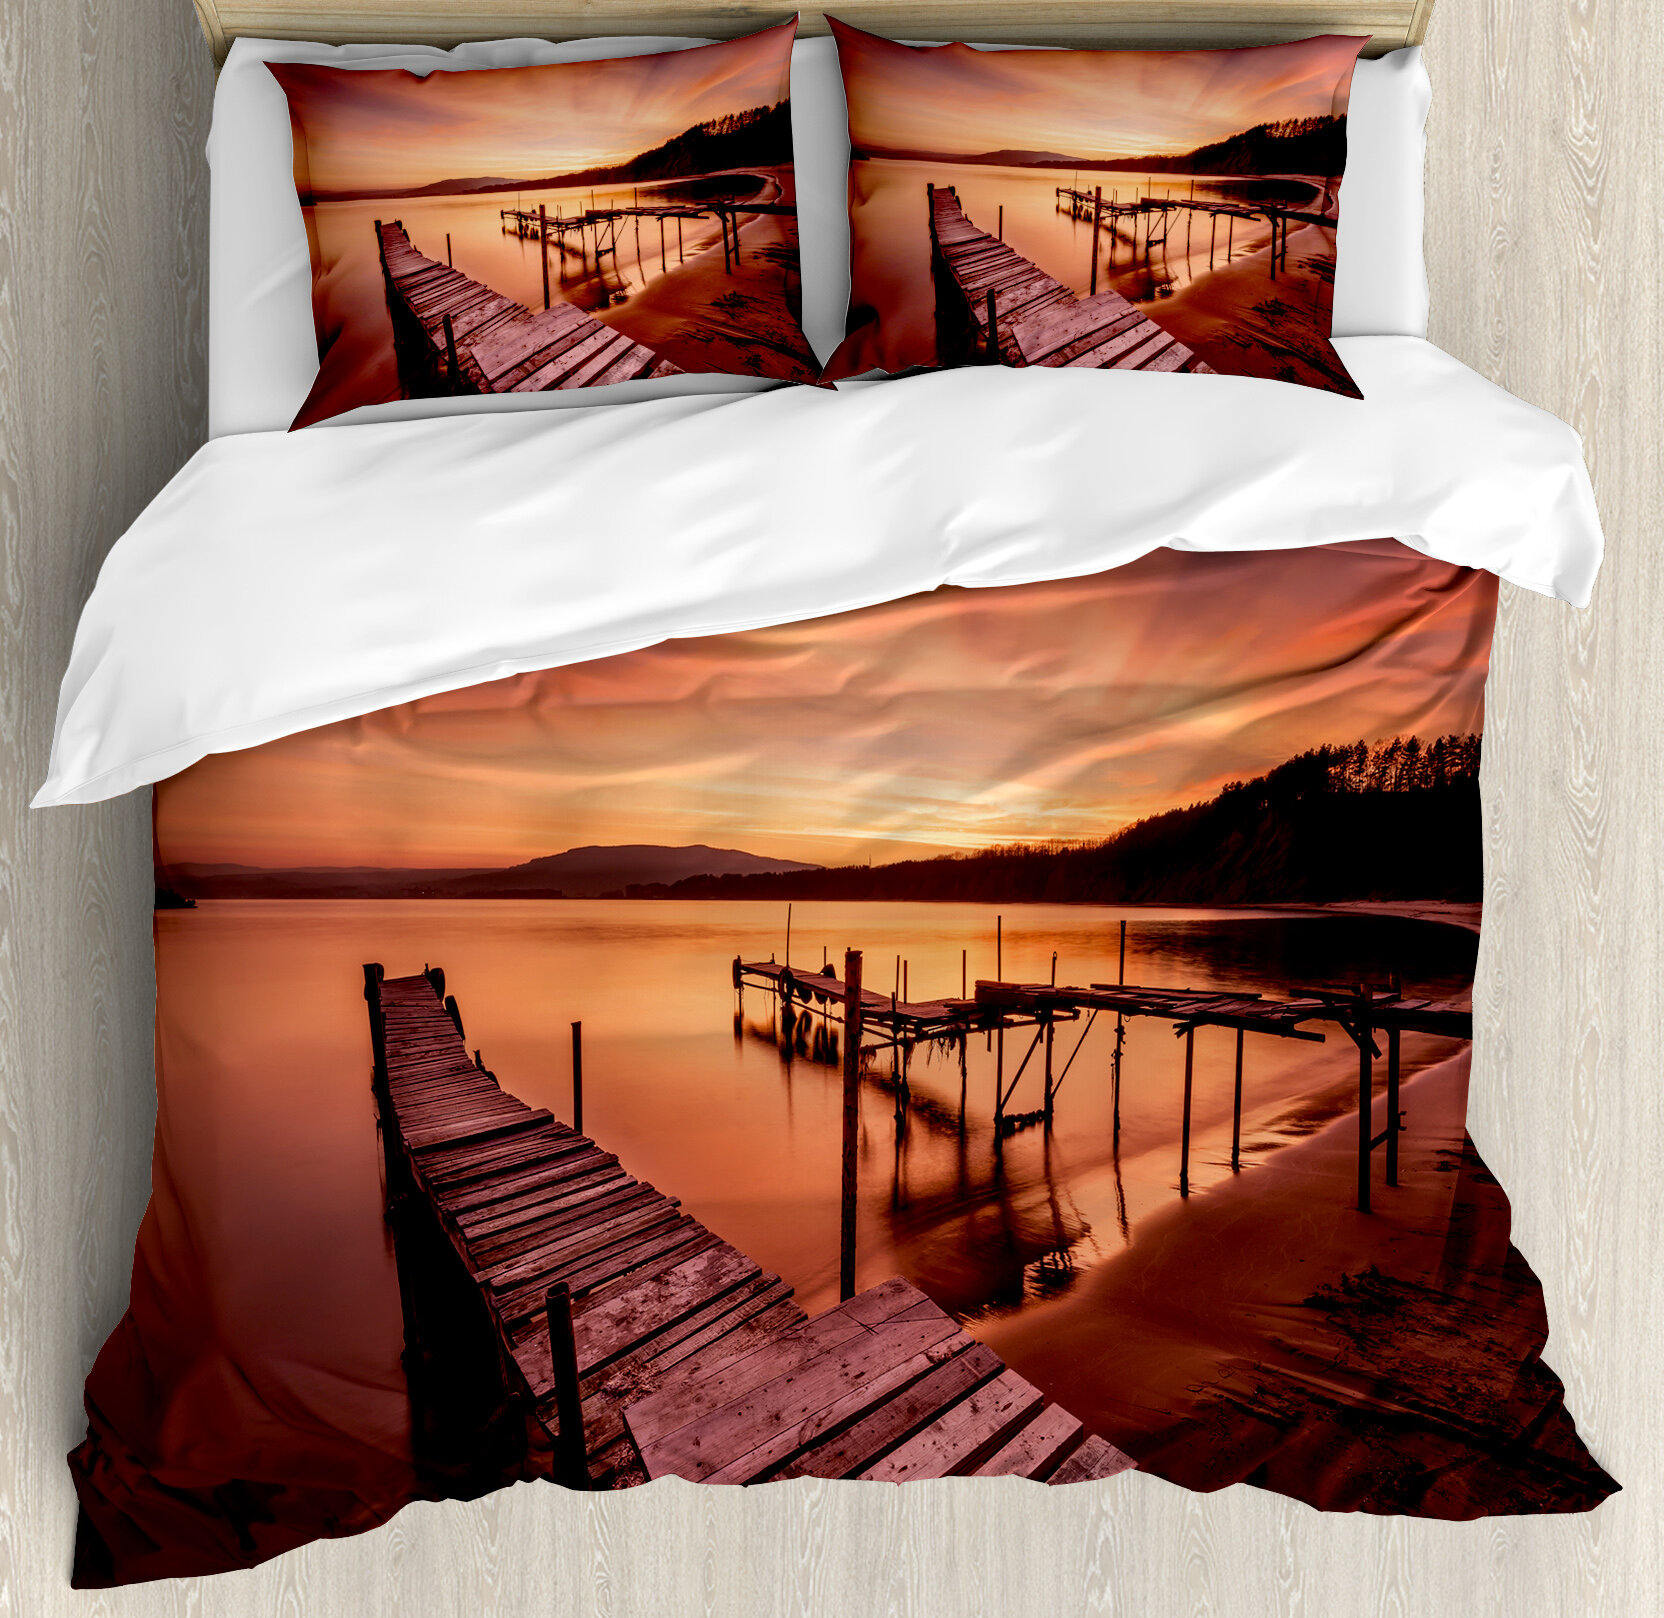 warmth bedding theme rustic duvet enjoy the covers moose